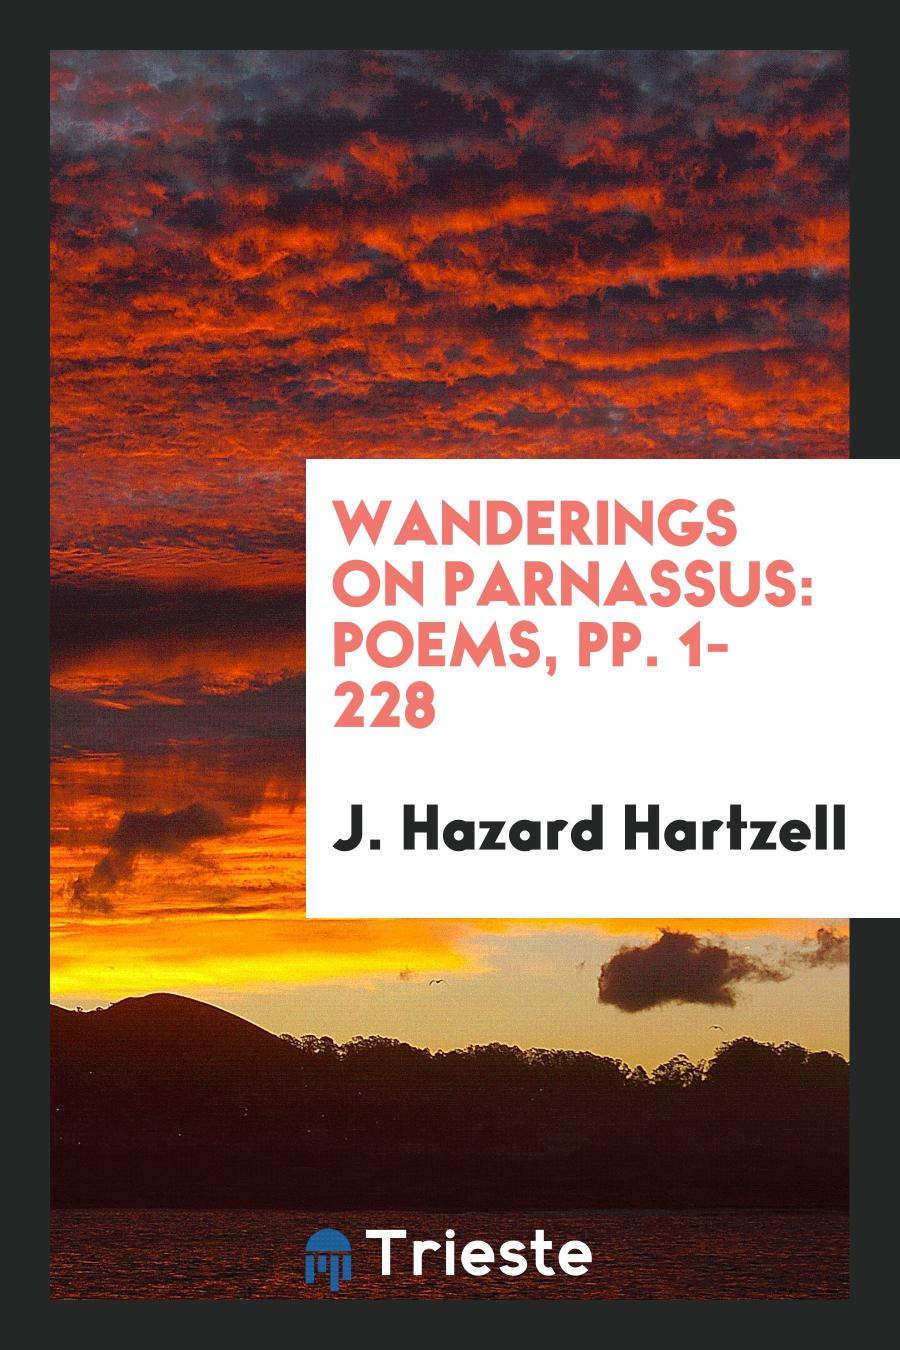 Wanderings on Parnassus: Poems, pp. 1-228